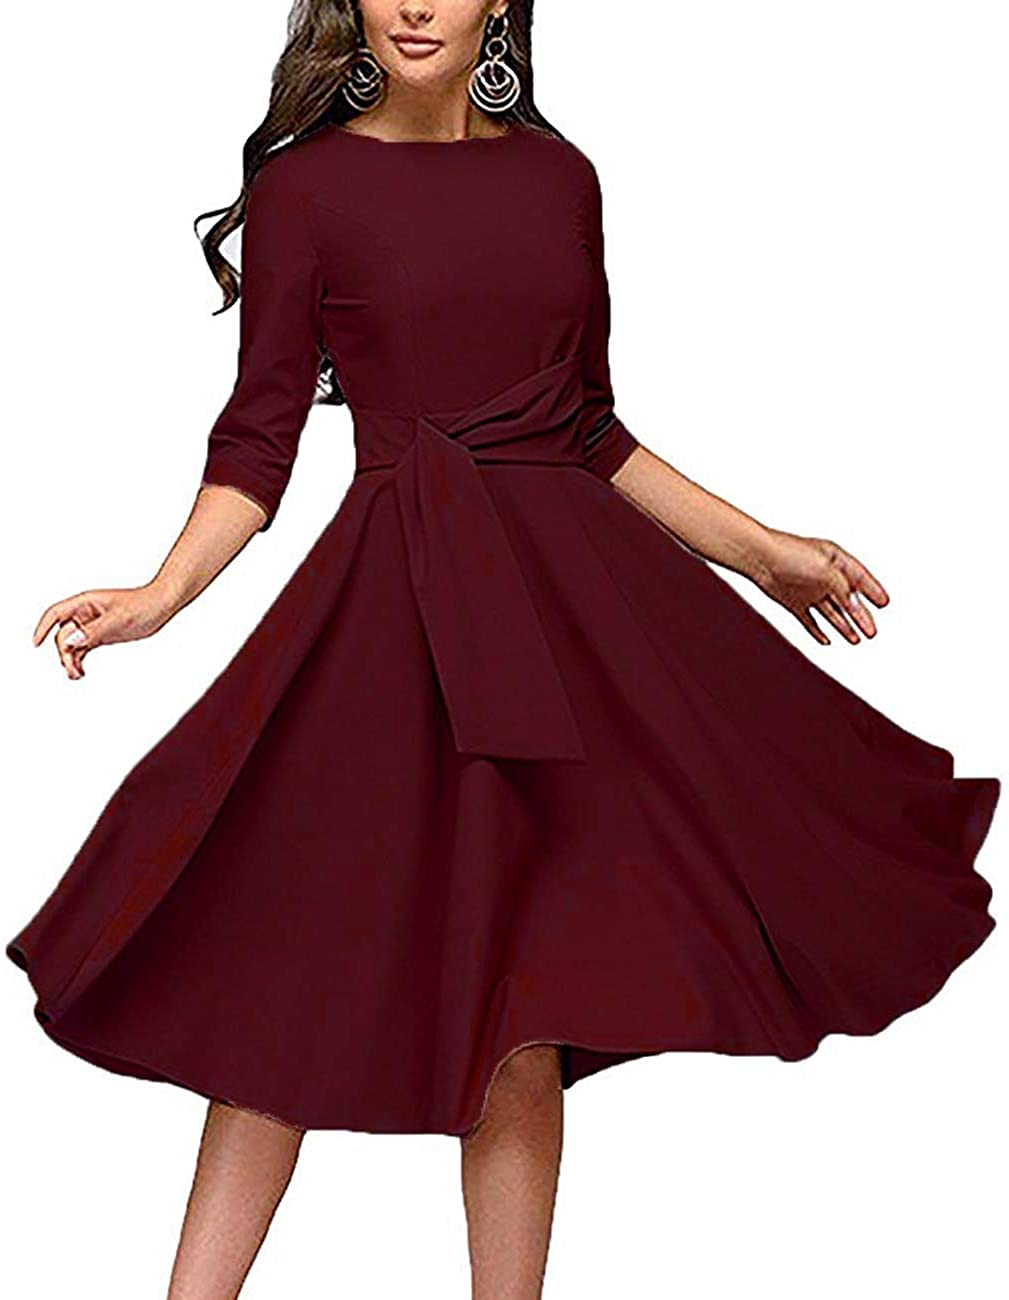 Women's Elegance Audrey Hepburn Style 3 Dress NEW before selling Ruched Neck Round Lowest price challenge